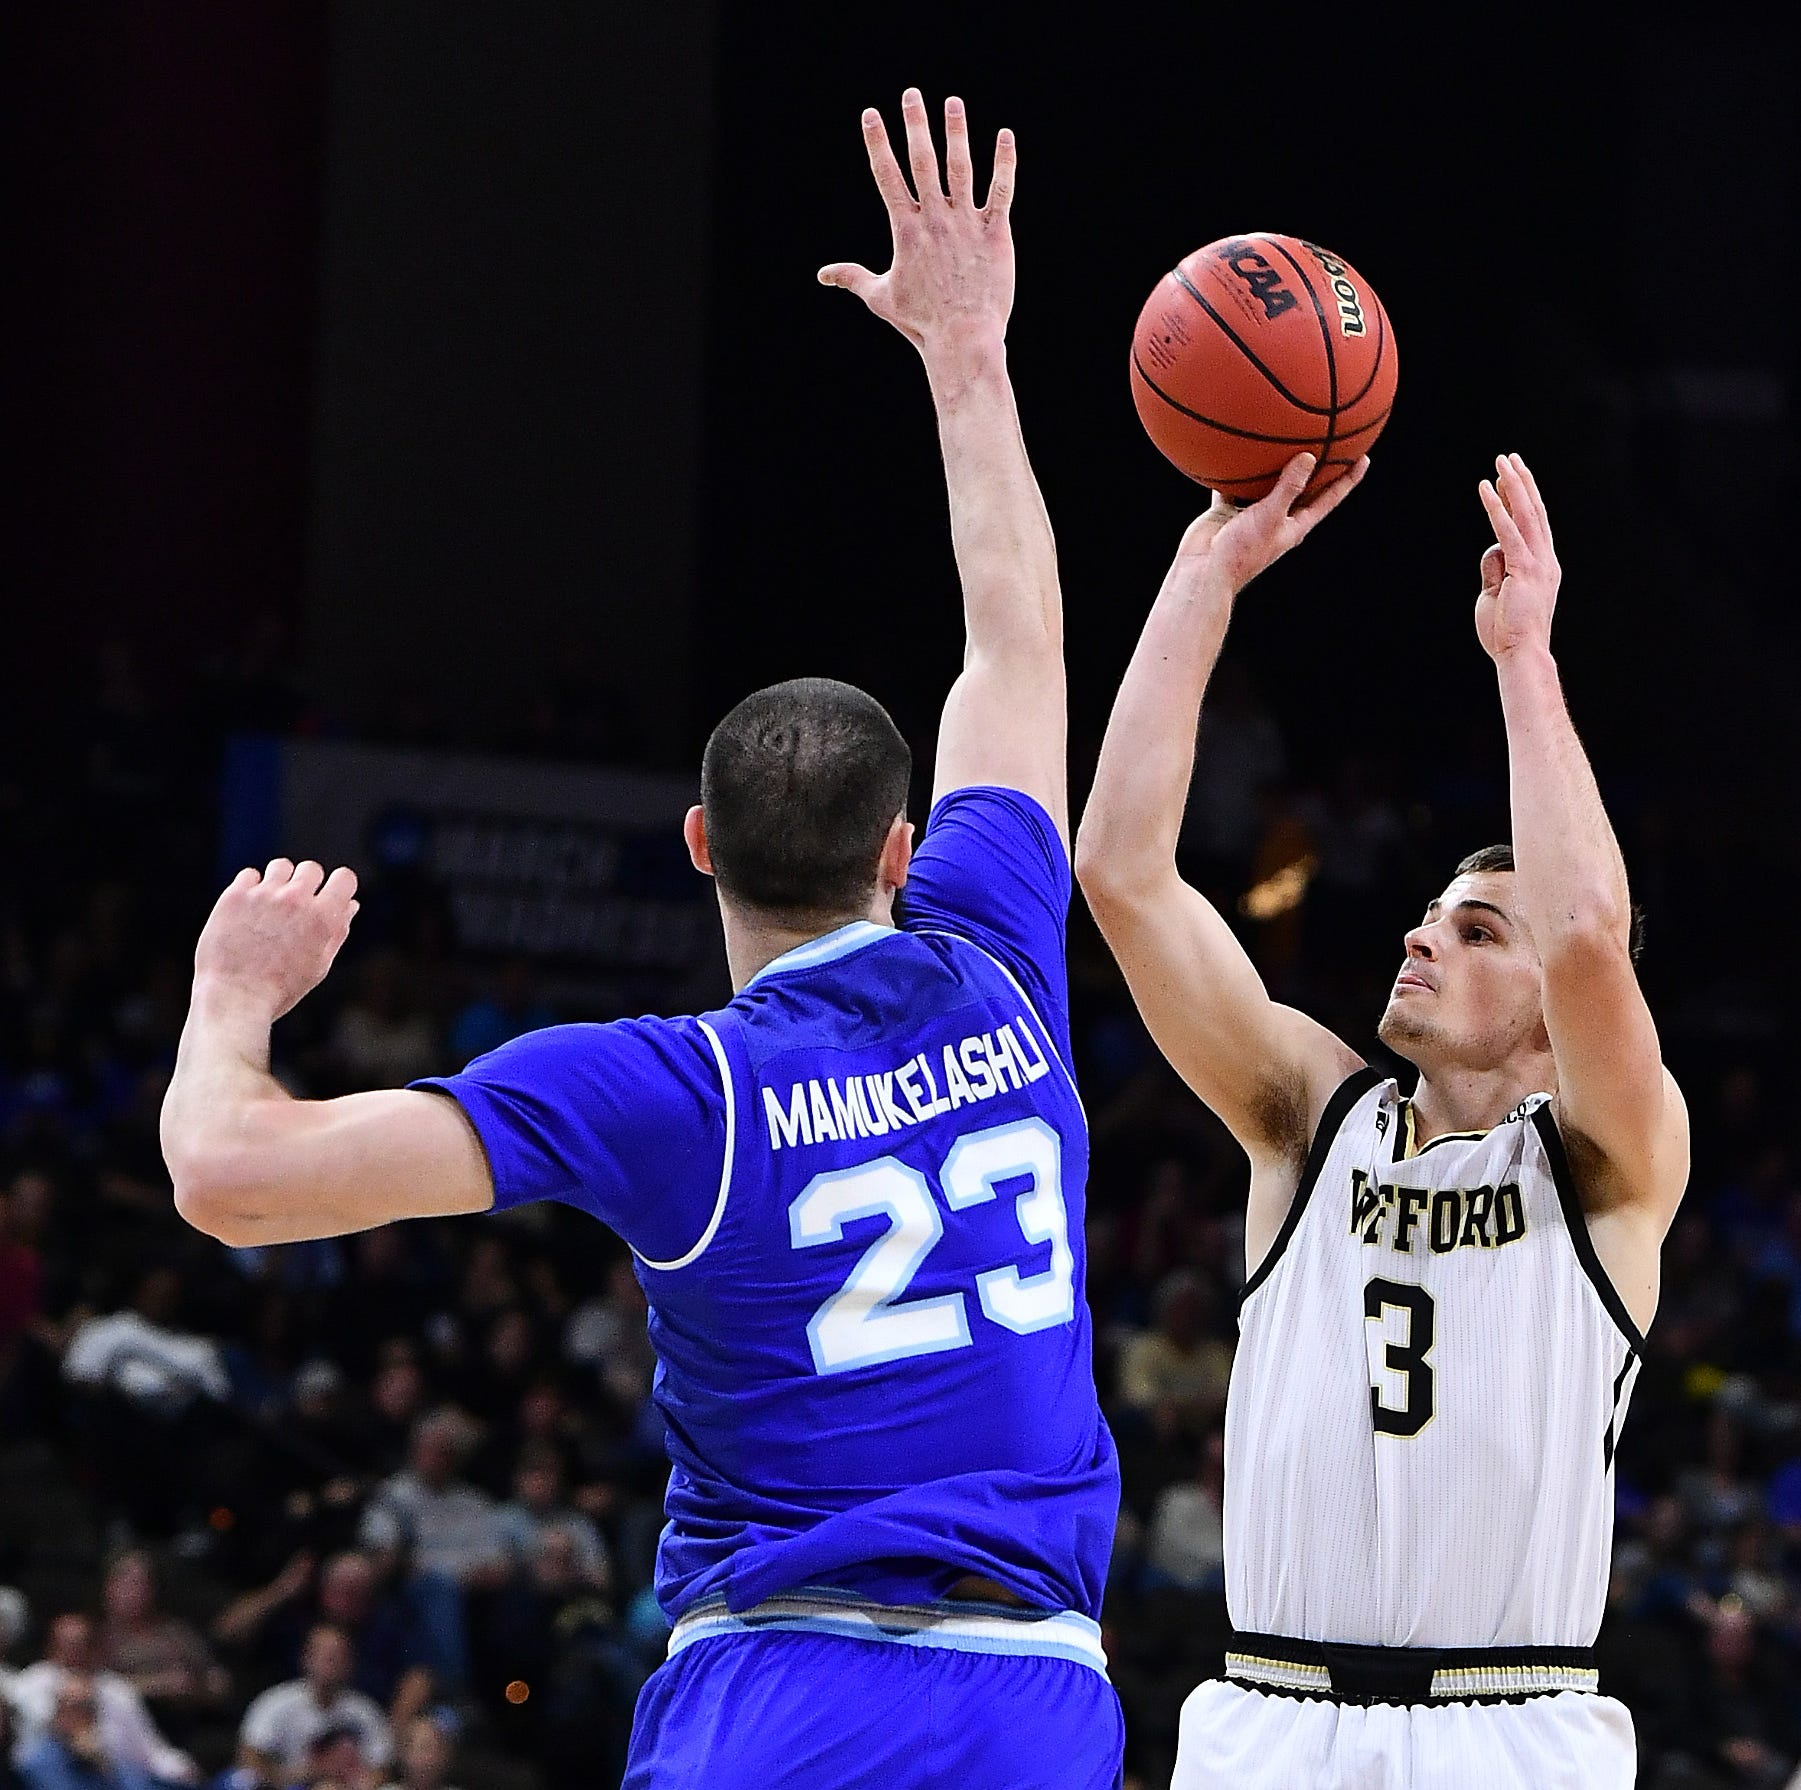 March Madness scores: NCAA Tournament game schedule and results